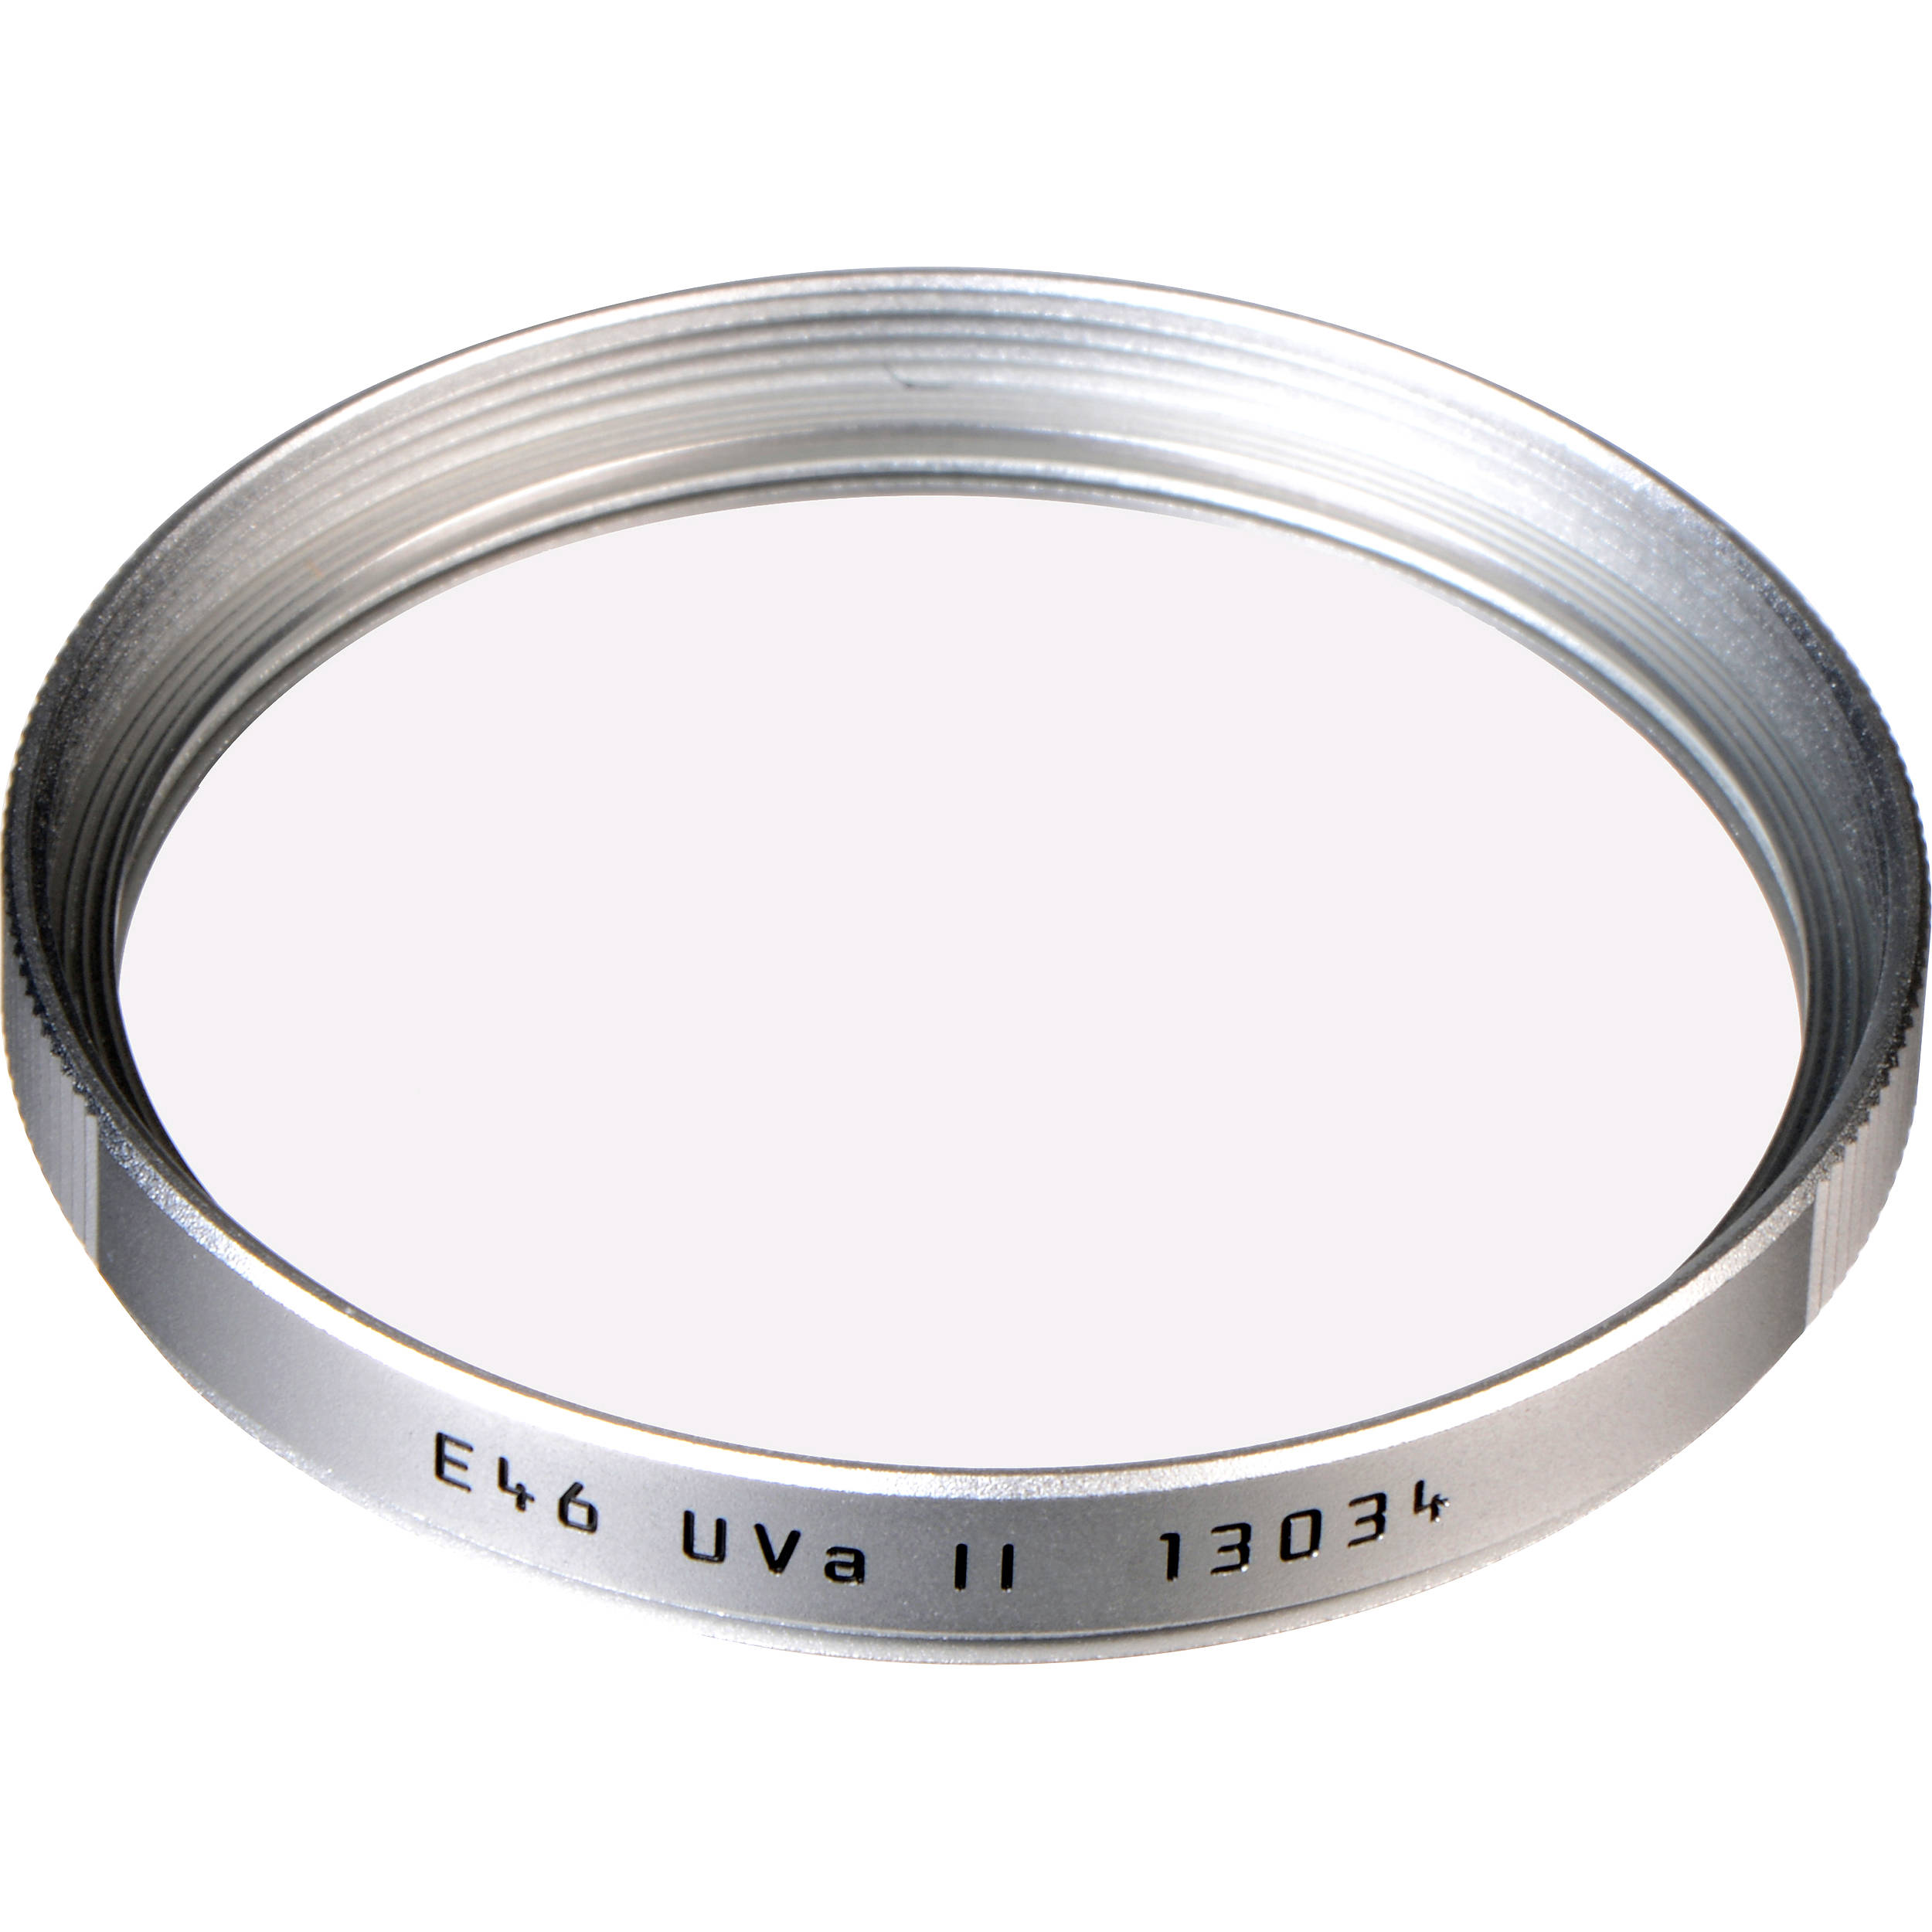 UV Leica 46E Ultra Violet Glass Filter with Silver Mount